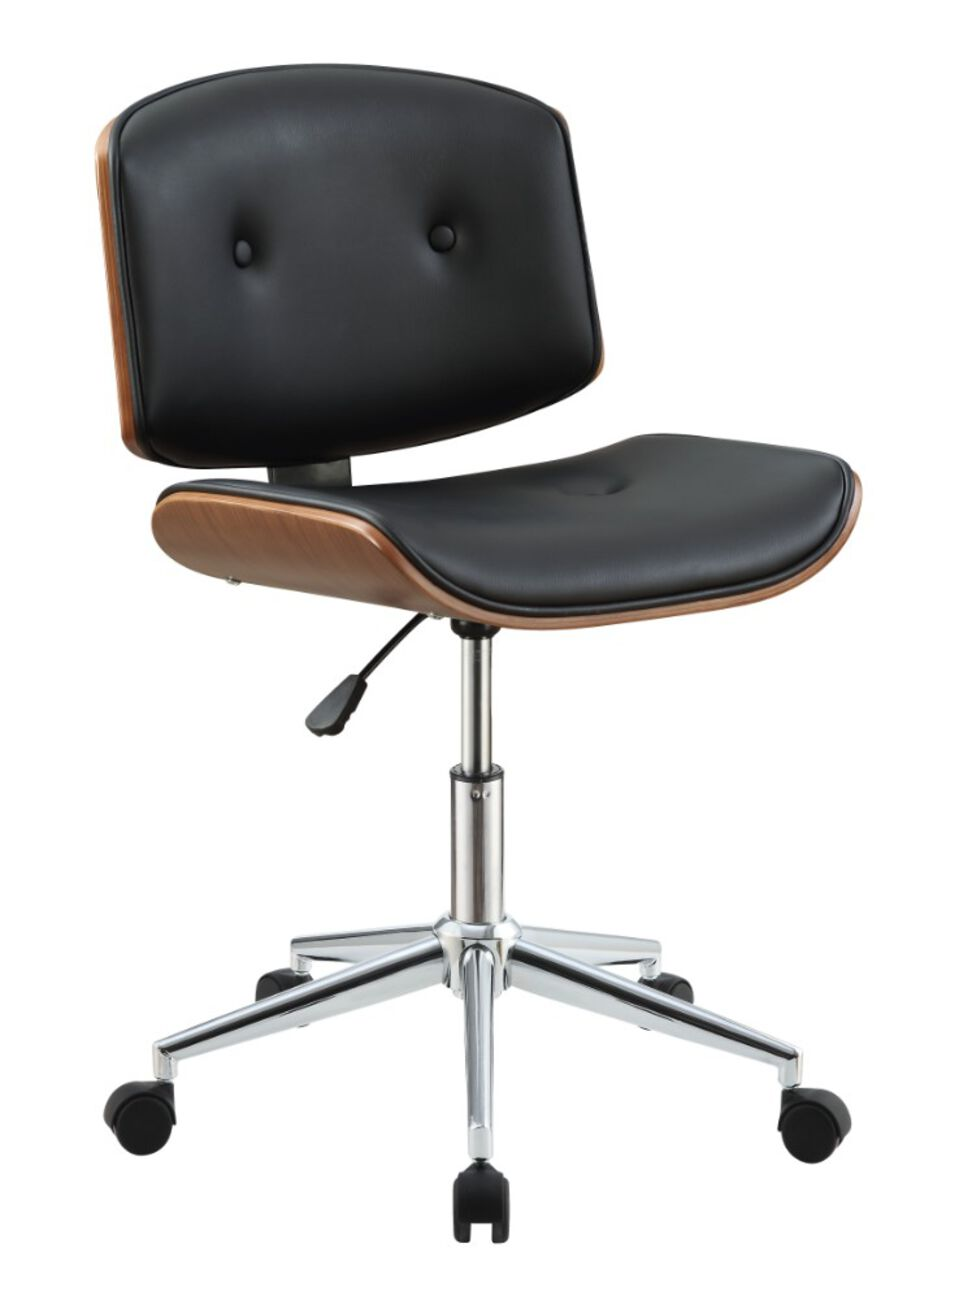 Wooden Back Armless Office Chair with Metal Star Base, Black and Brown